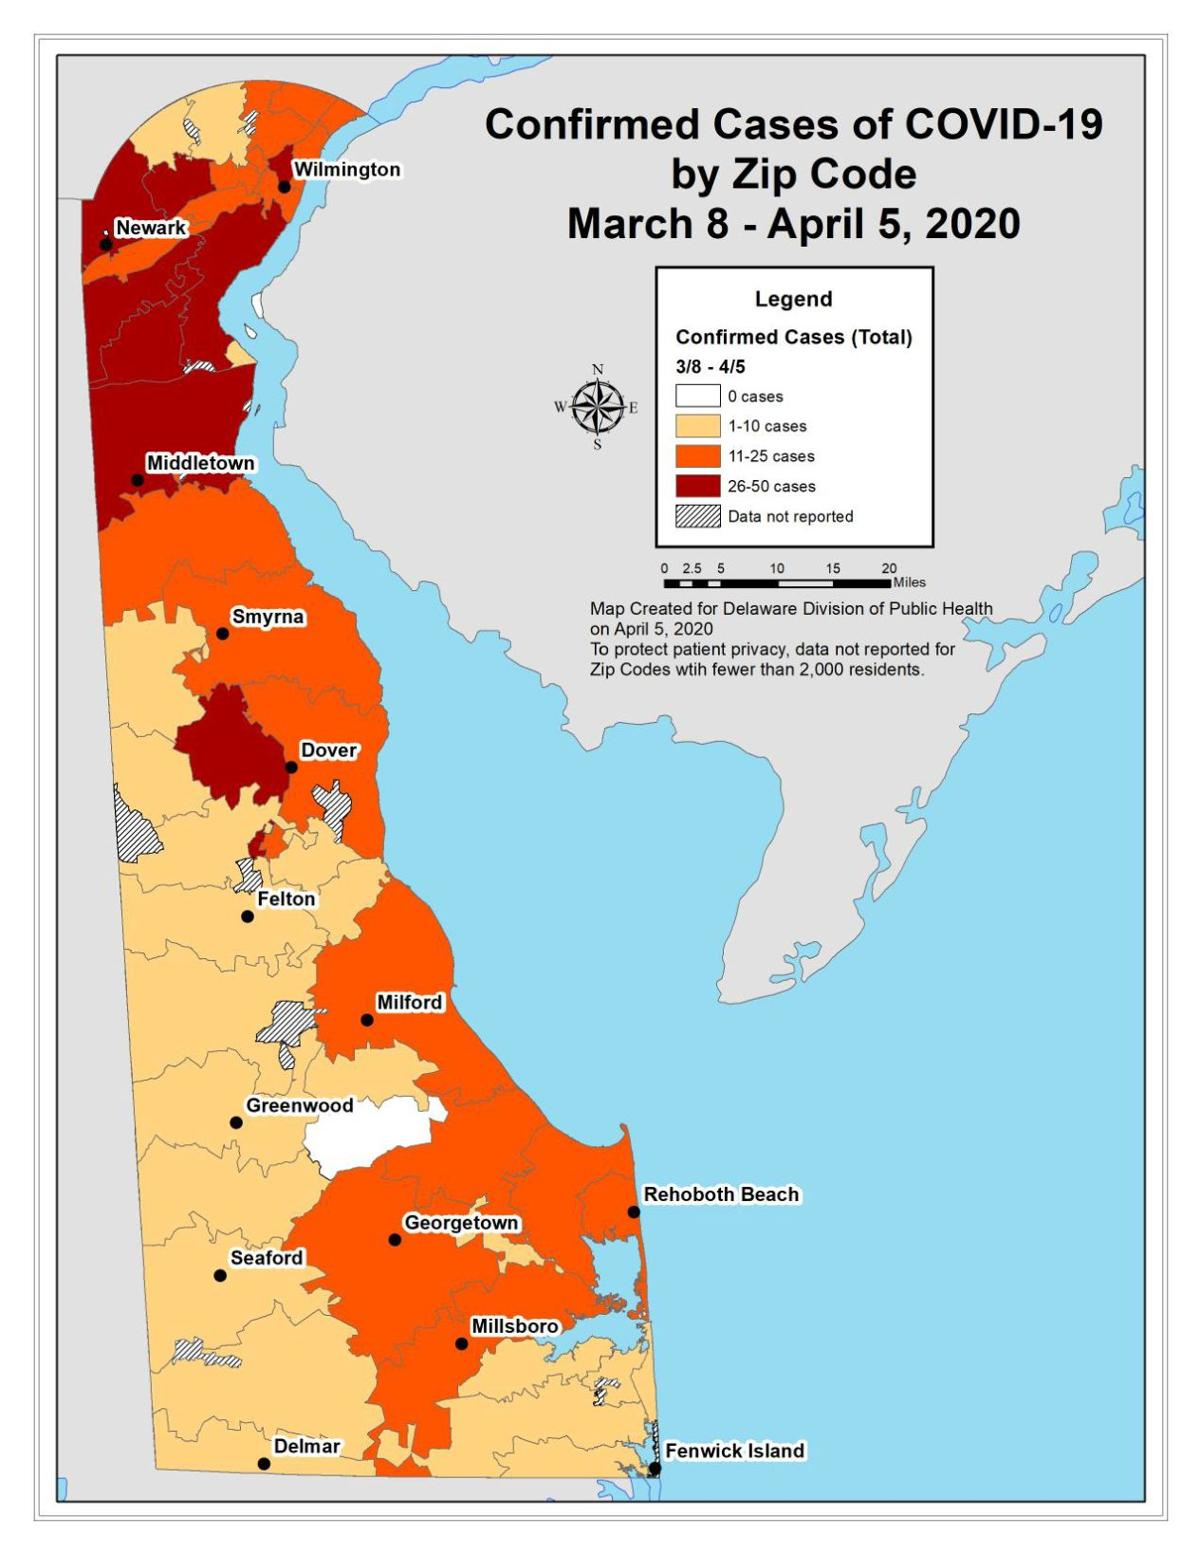 Delaware Confirmed Cases of COVID-19, By Zip Code, from March 8 to April 5, 2020